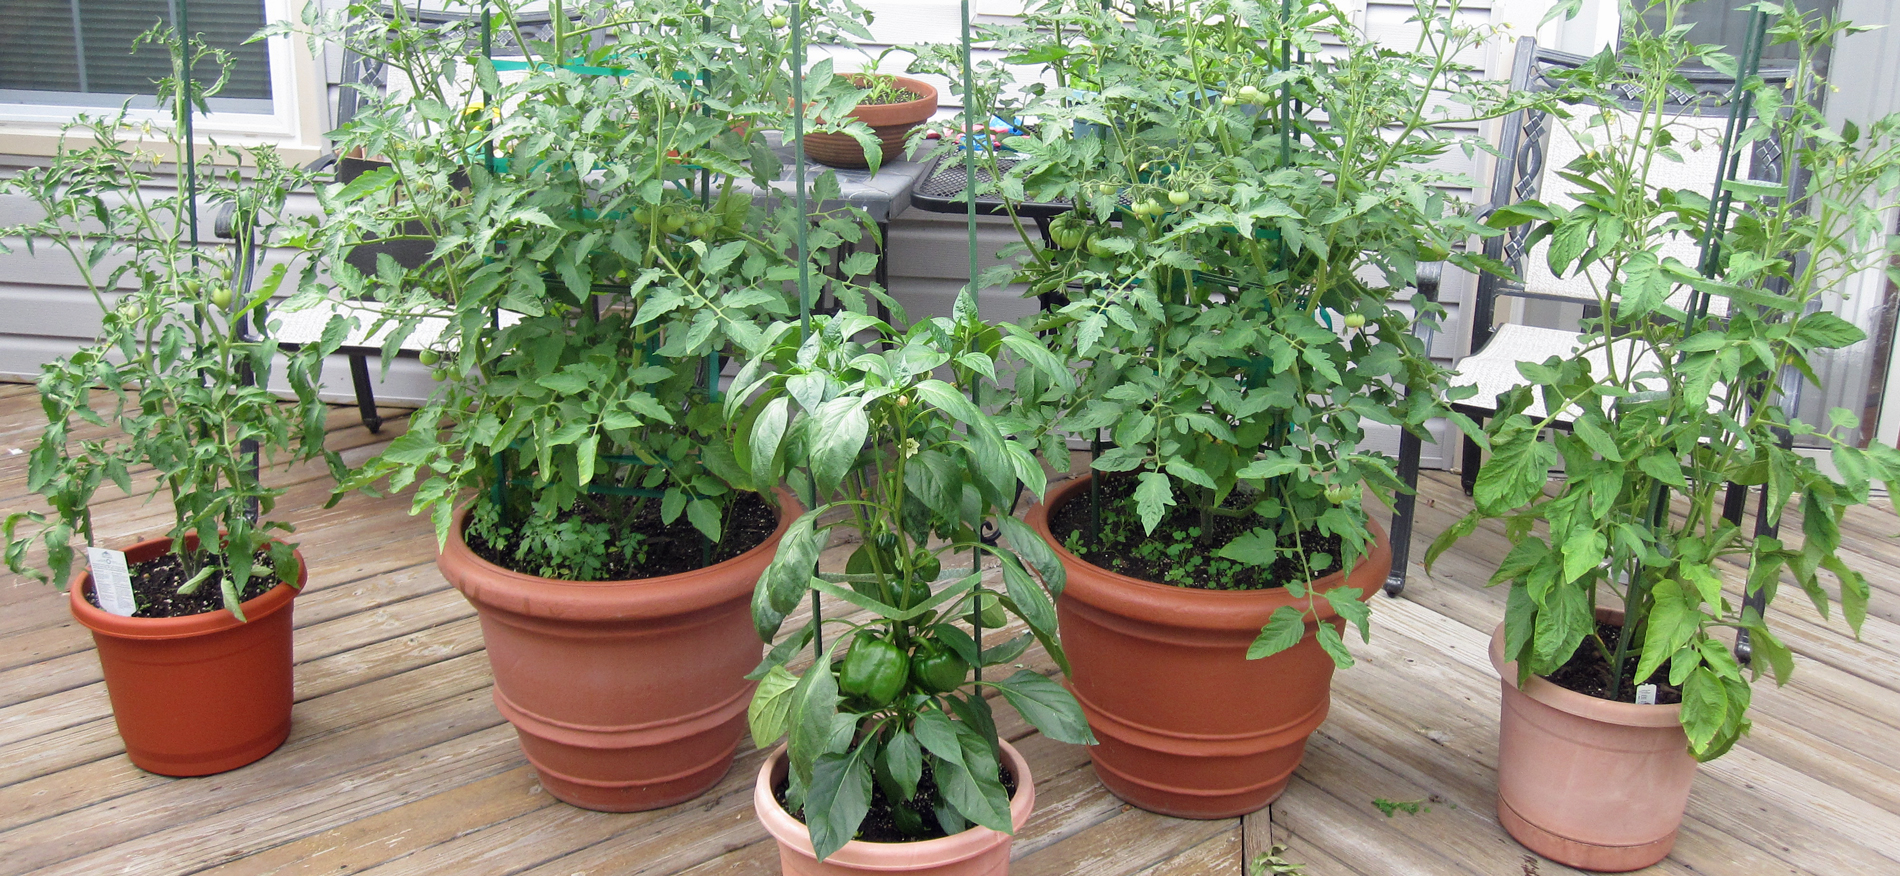 Container Gardening For Tomatoes And Peppers Blog Growjoy